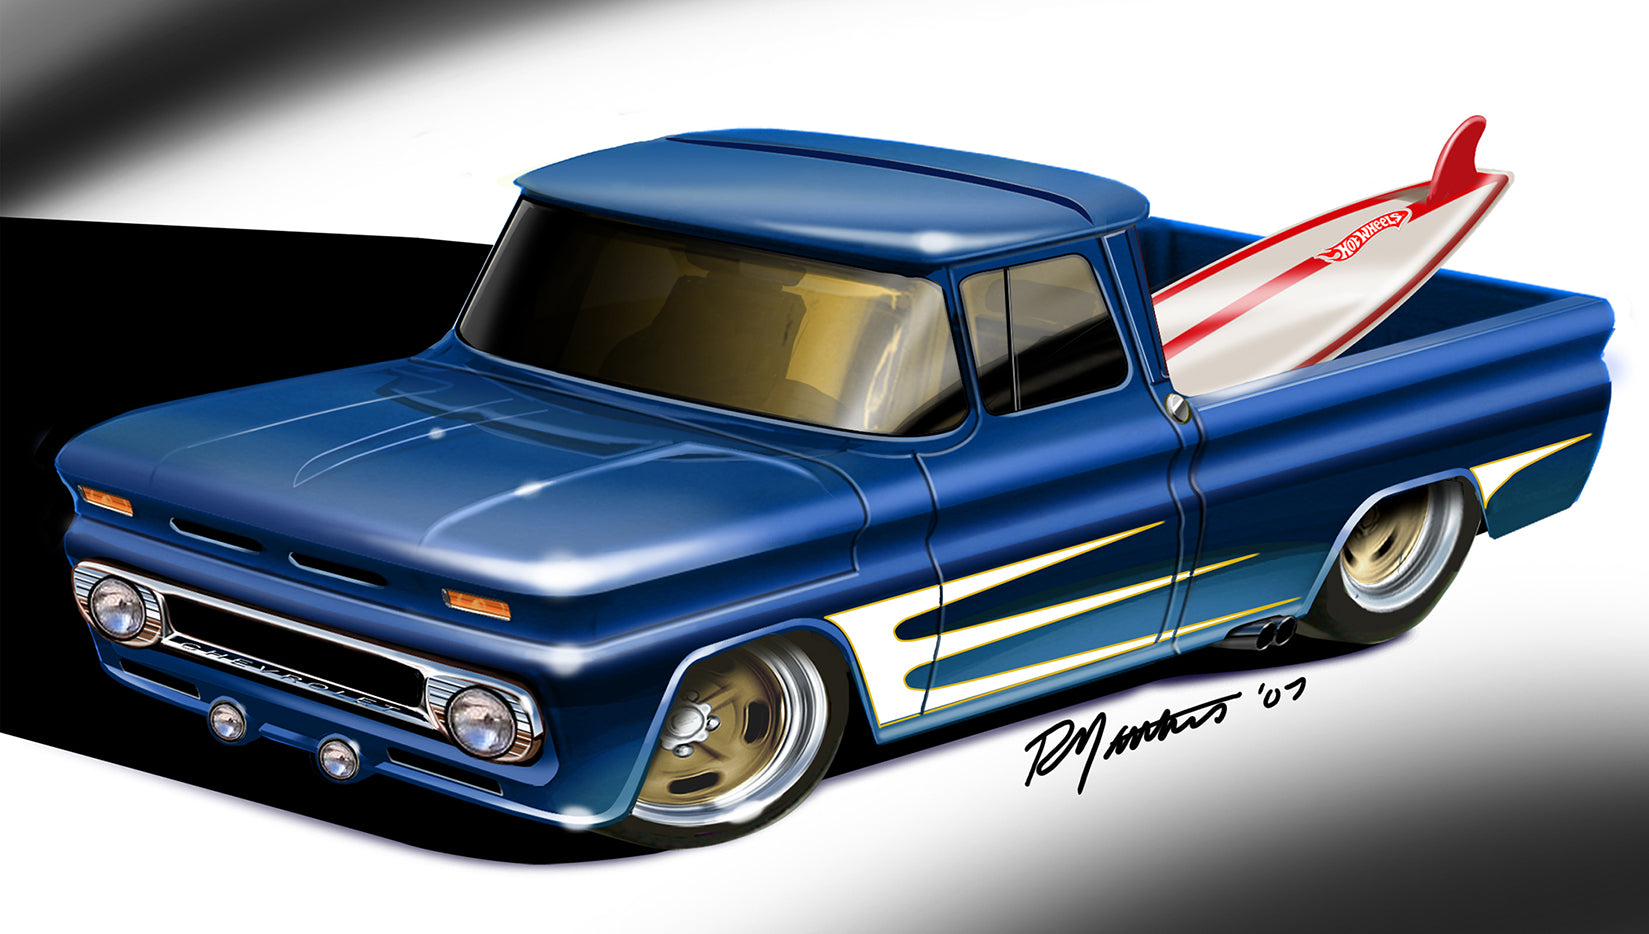 1962 Custom Chevy Pickup basic car for Hot Wheels